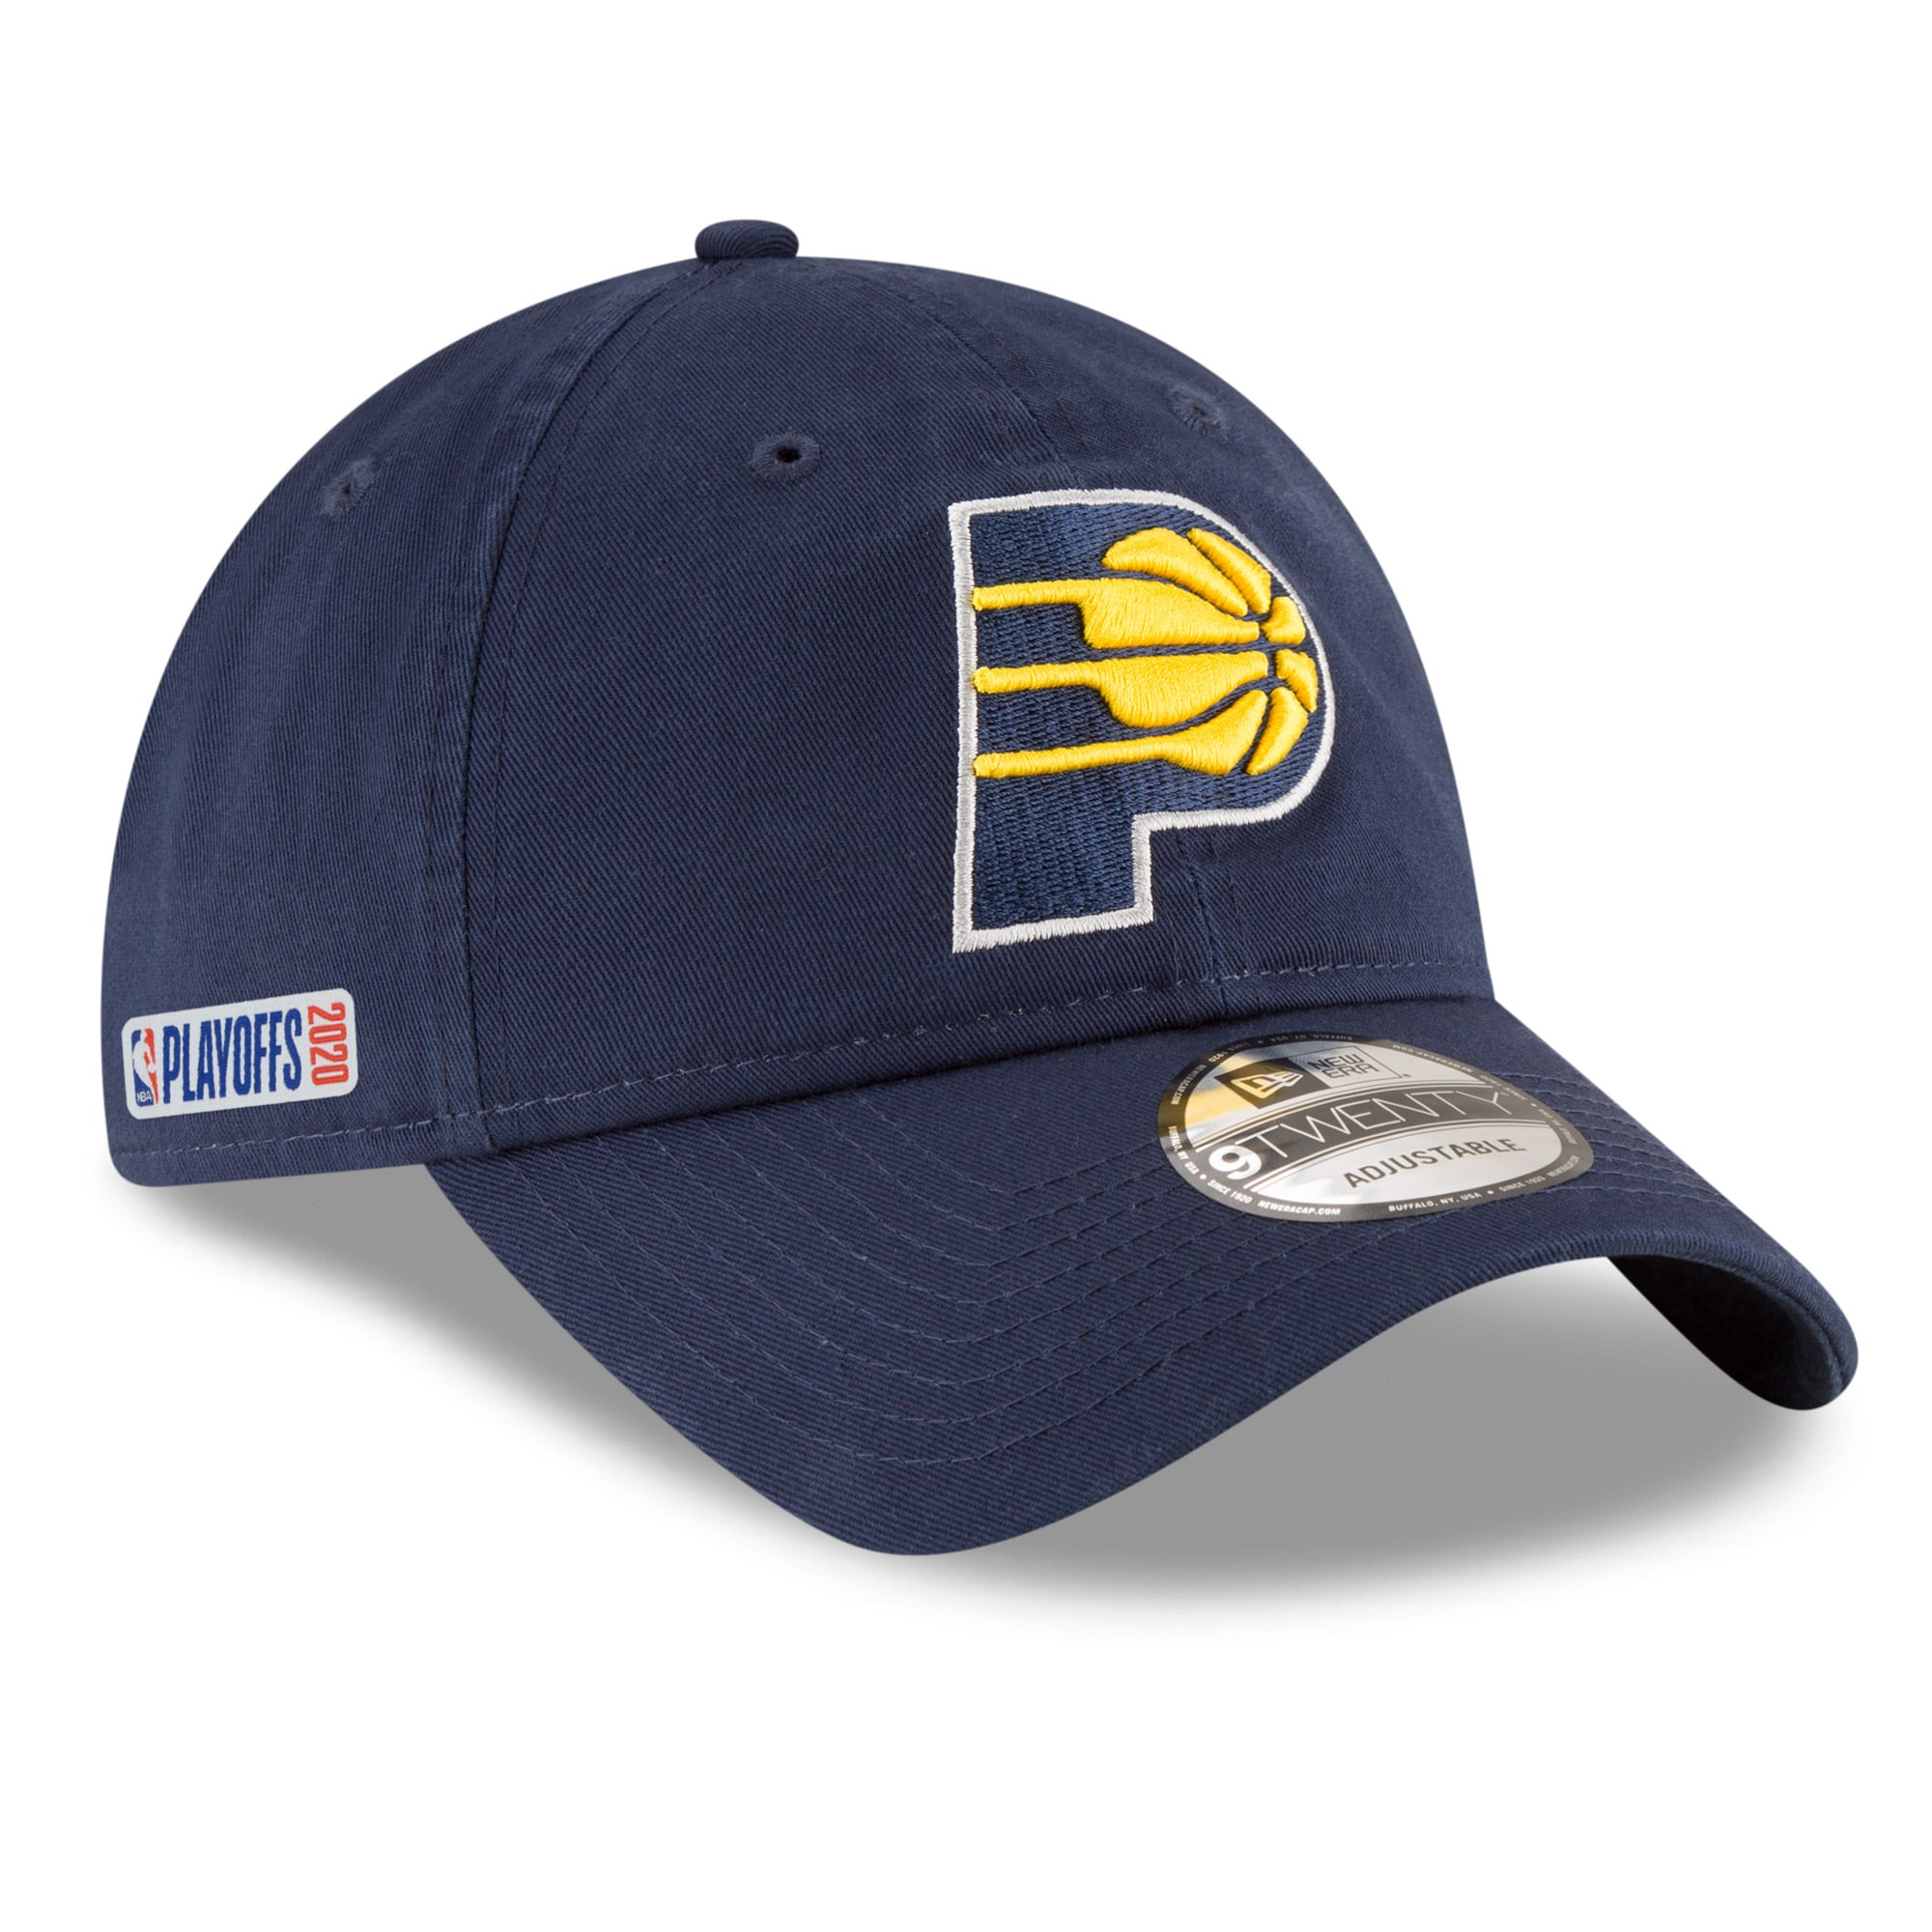 Indiana Pacers New Era 2020 NBA Playoffs Bound 9TWENTY Adjustable Hat - Navy